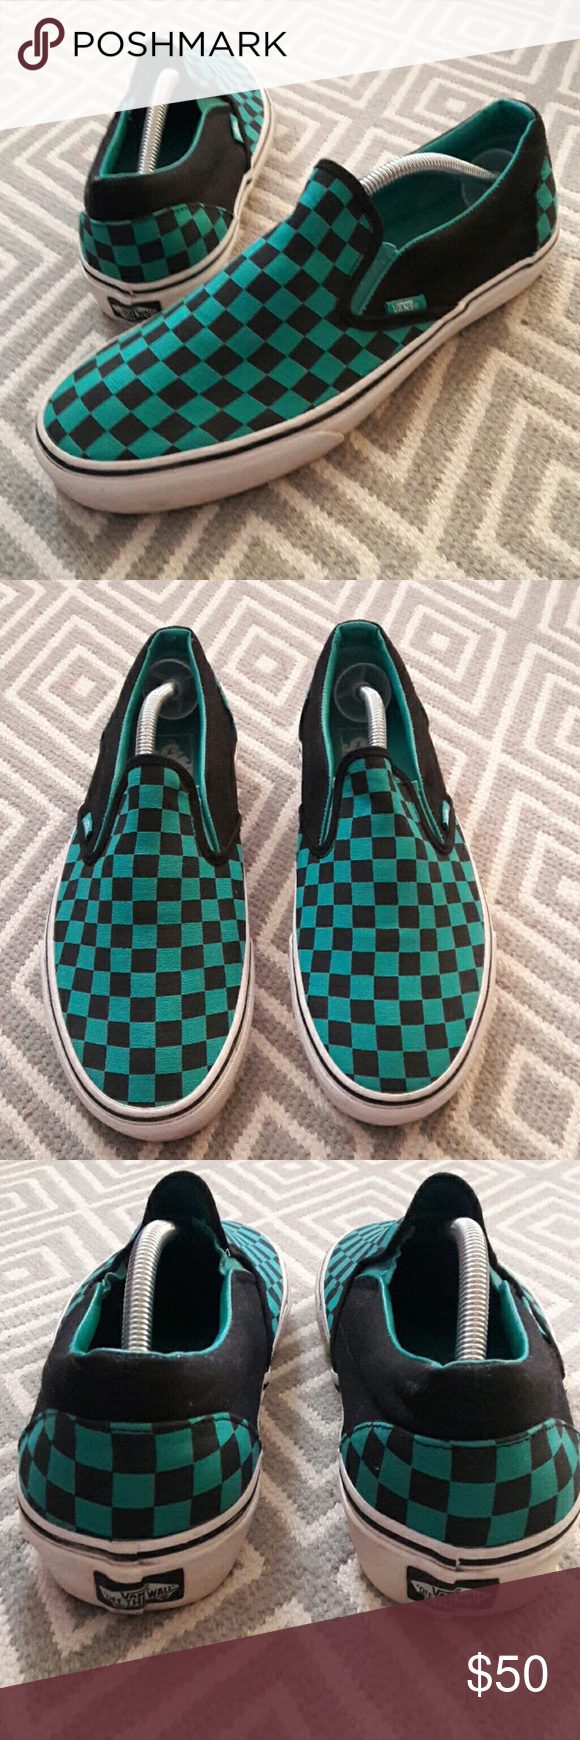 13a9ba12f5a054 Vans checkered slip on vans In good condition Unisex Women s size 12 Men s  size 10.5 Nice pair of classic checkered vans Color is like aqua blue green  and ...